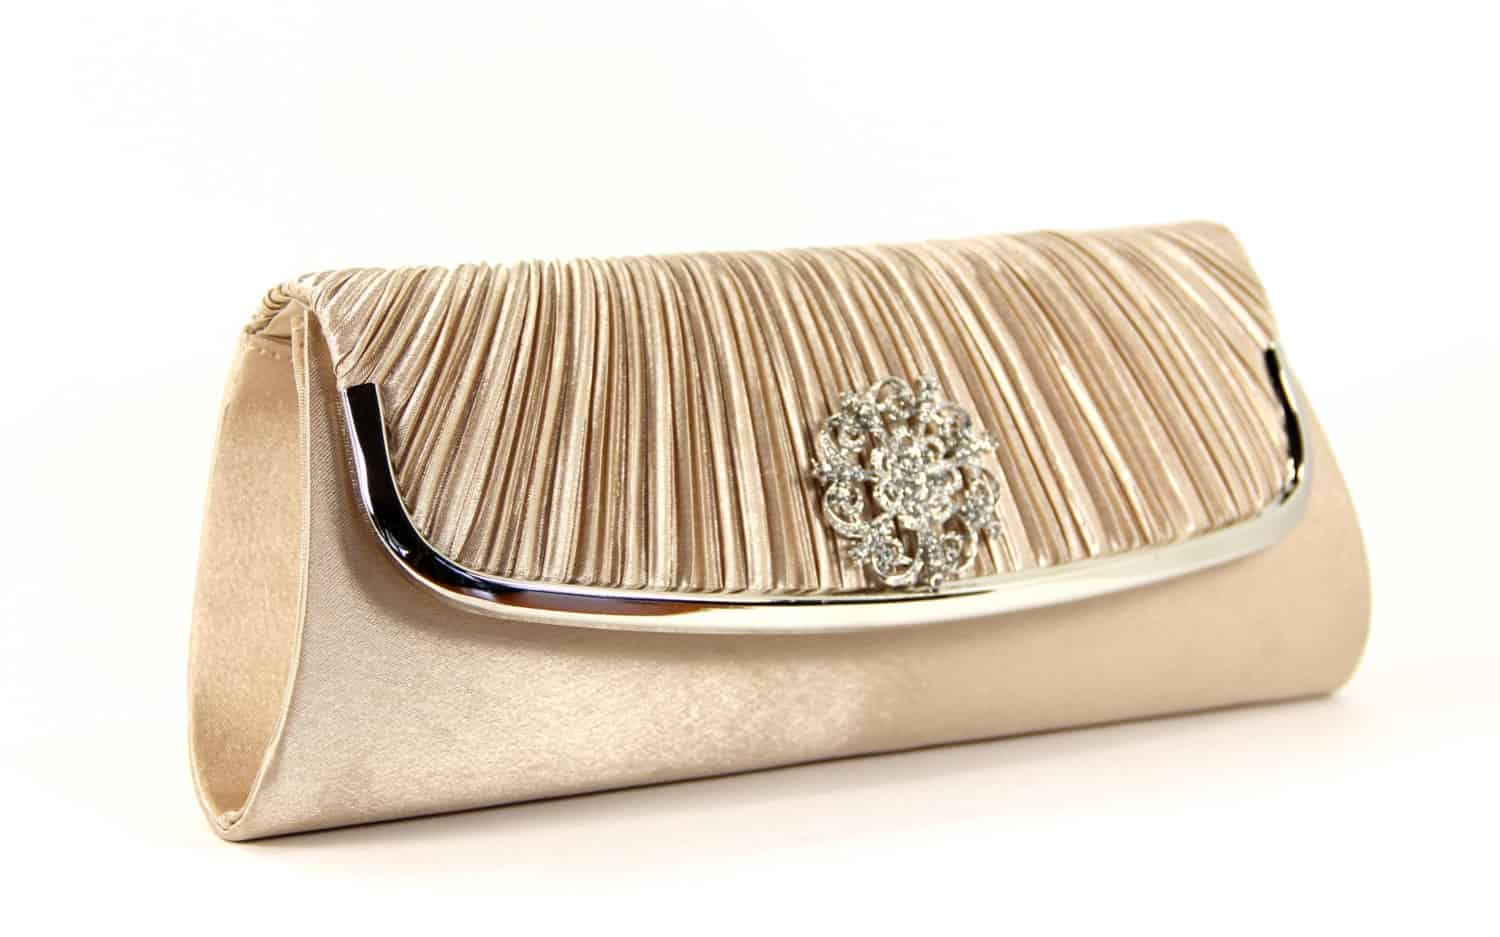 The Must-Have Bridal Accessory? The Bridal Clutch!